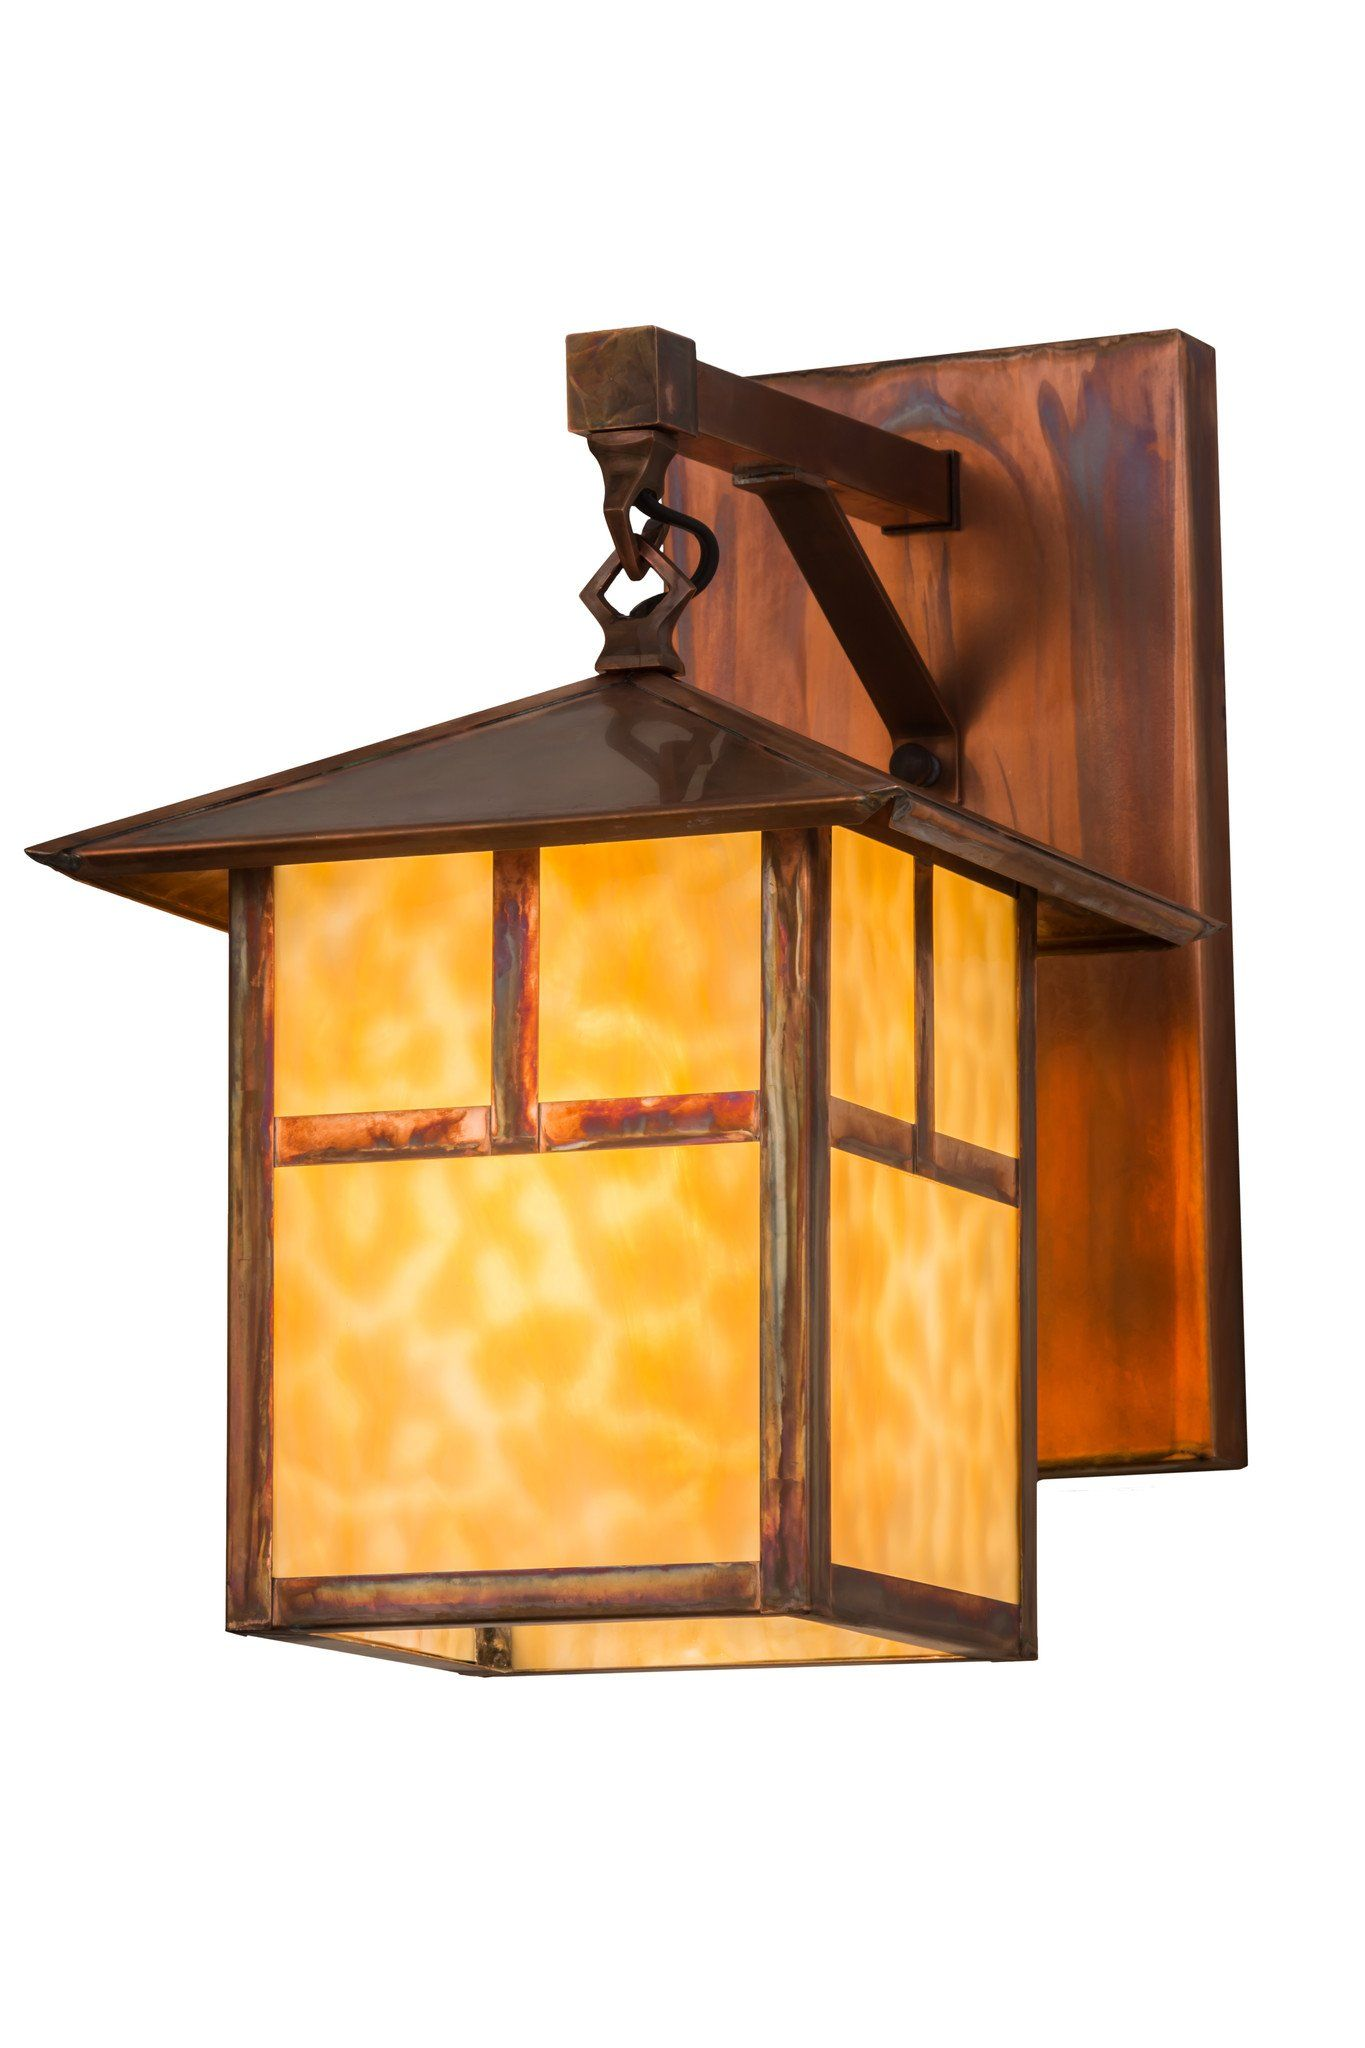 interior fancy pillar sconces lights holders medium size wall bathroom candle double large extra sconce hanging outdoor industrial home cord with discount of